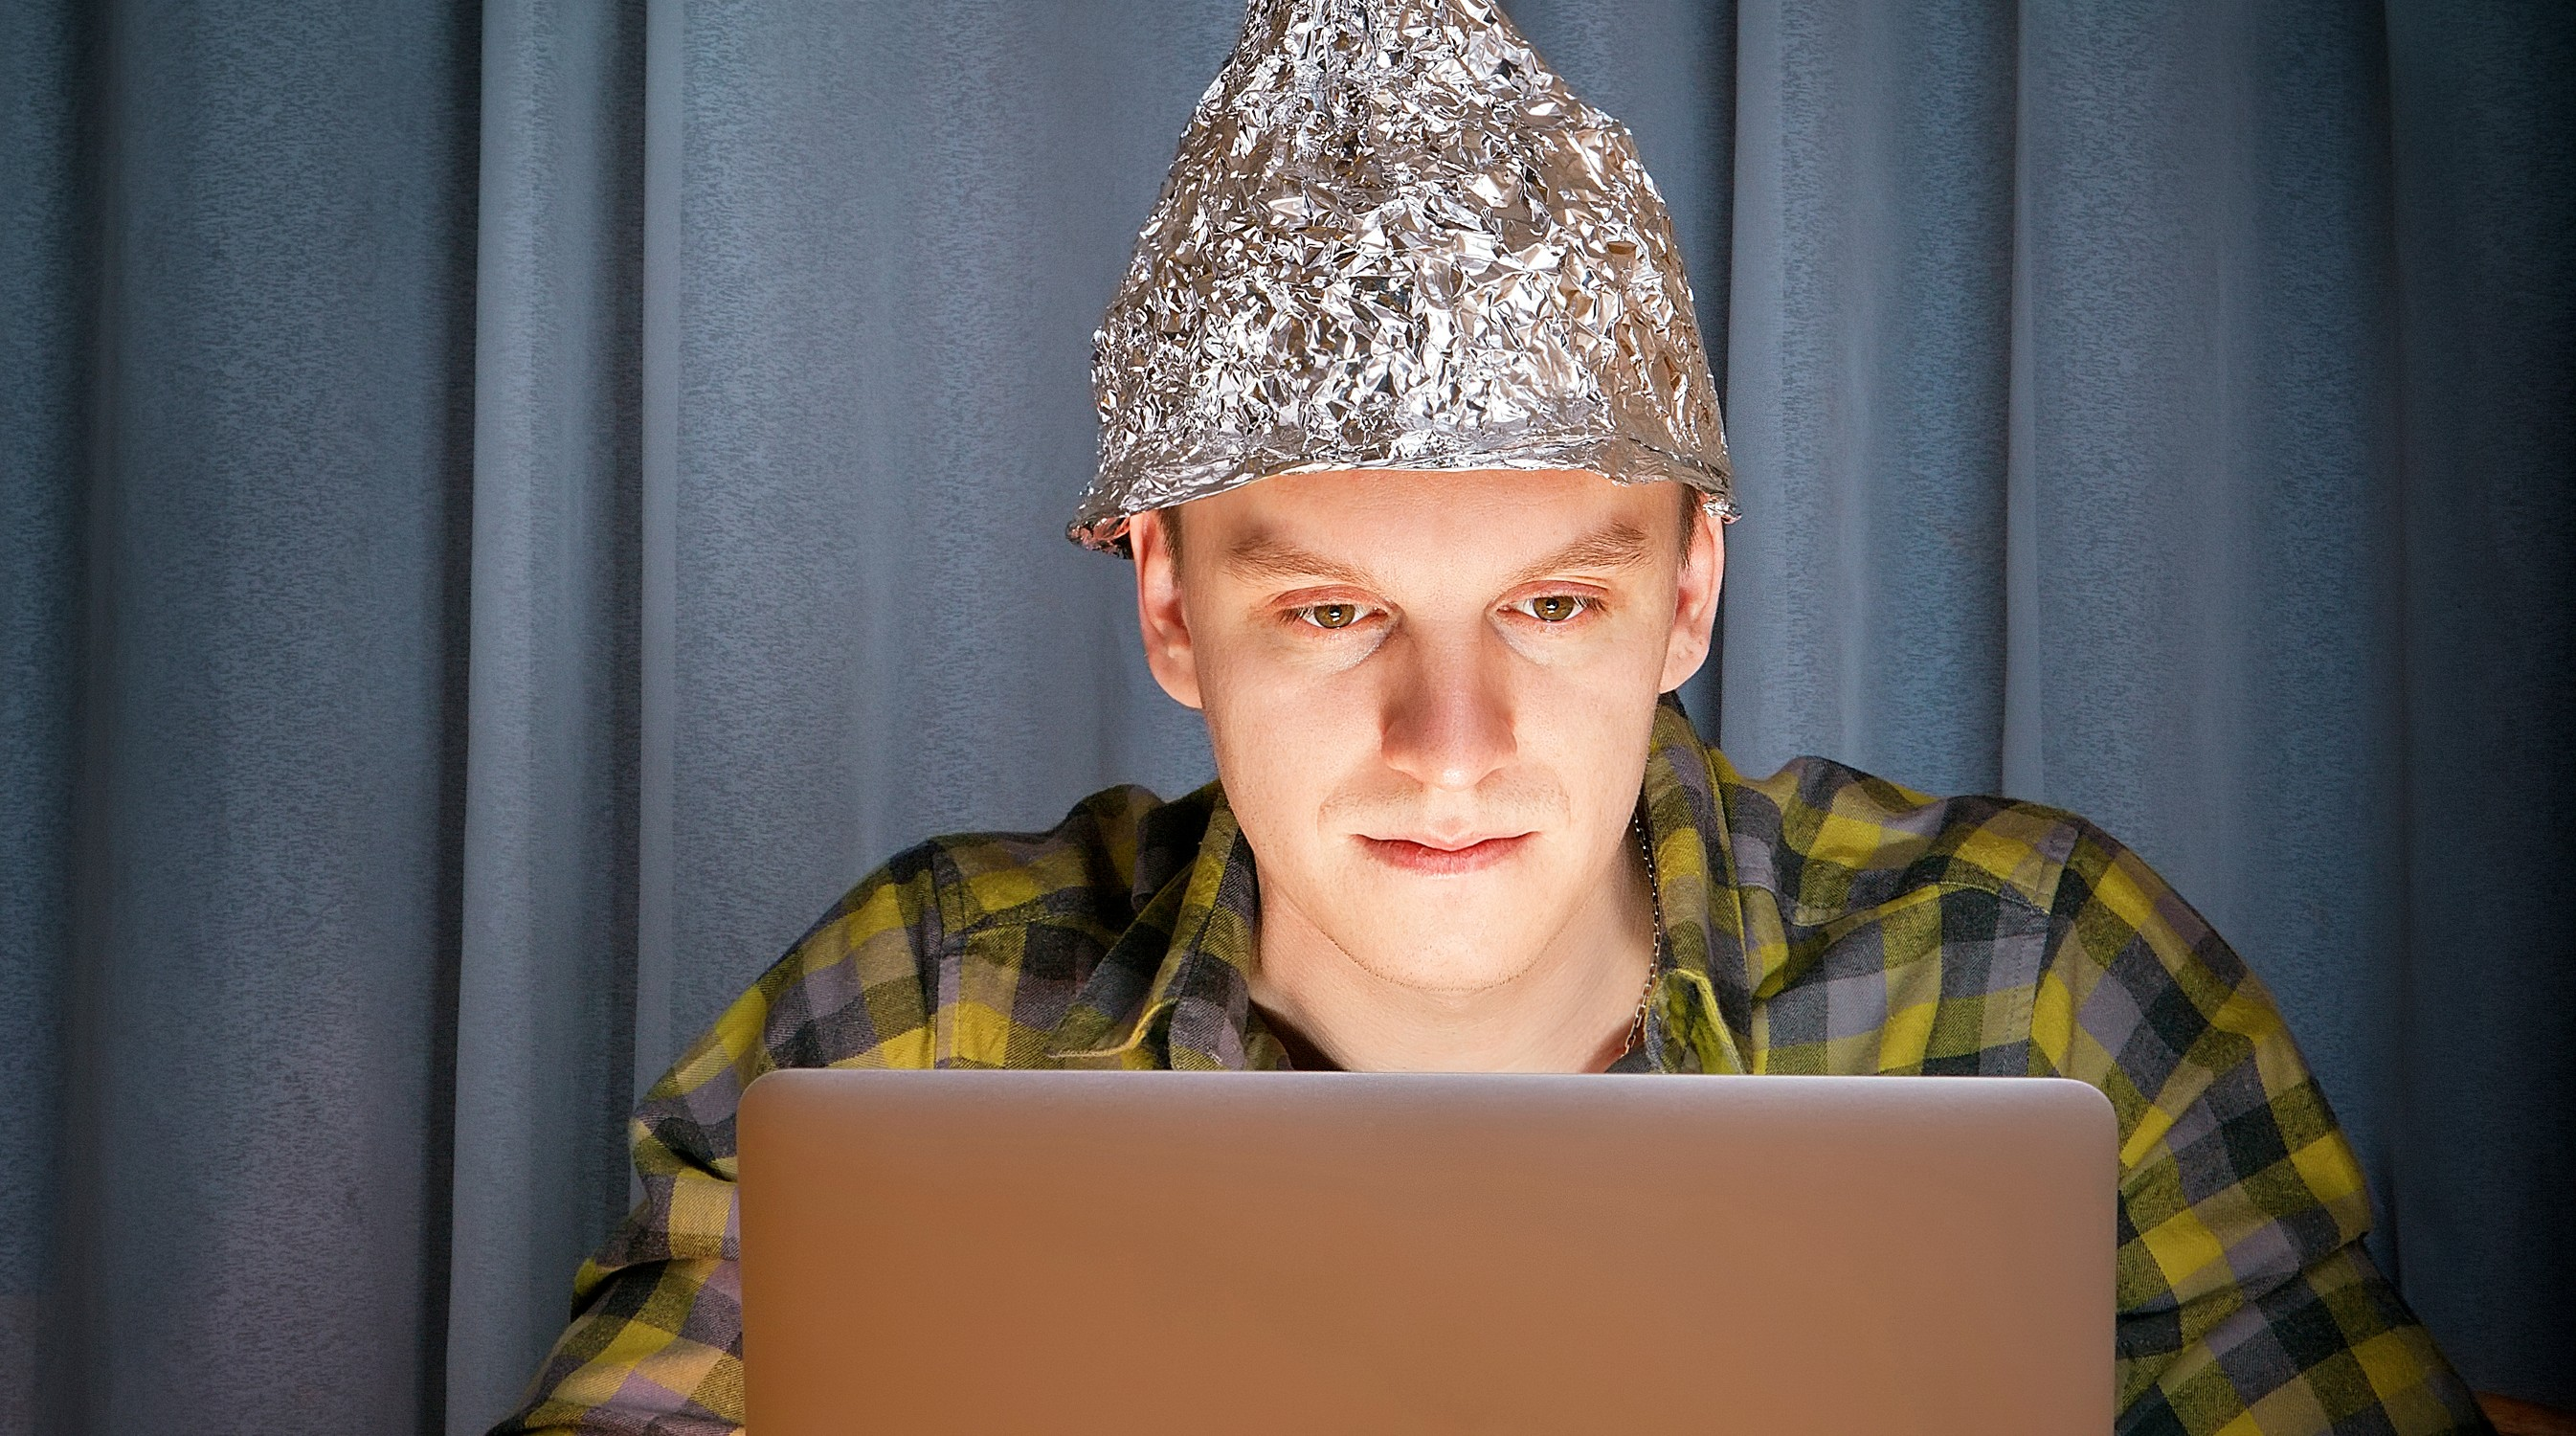 tinfoil-hat-privacy-paranoia-e1453423049982